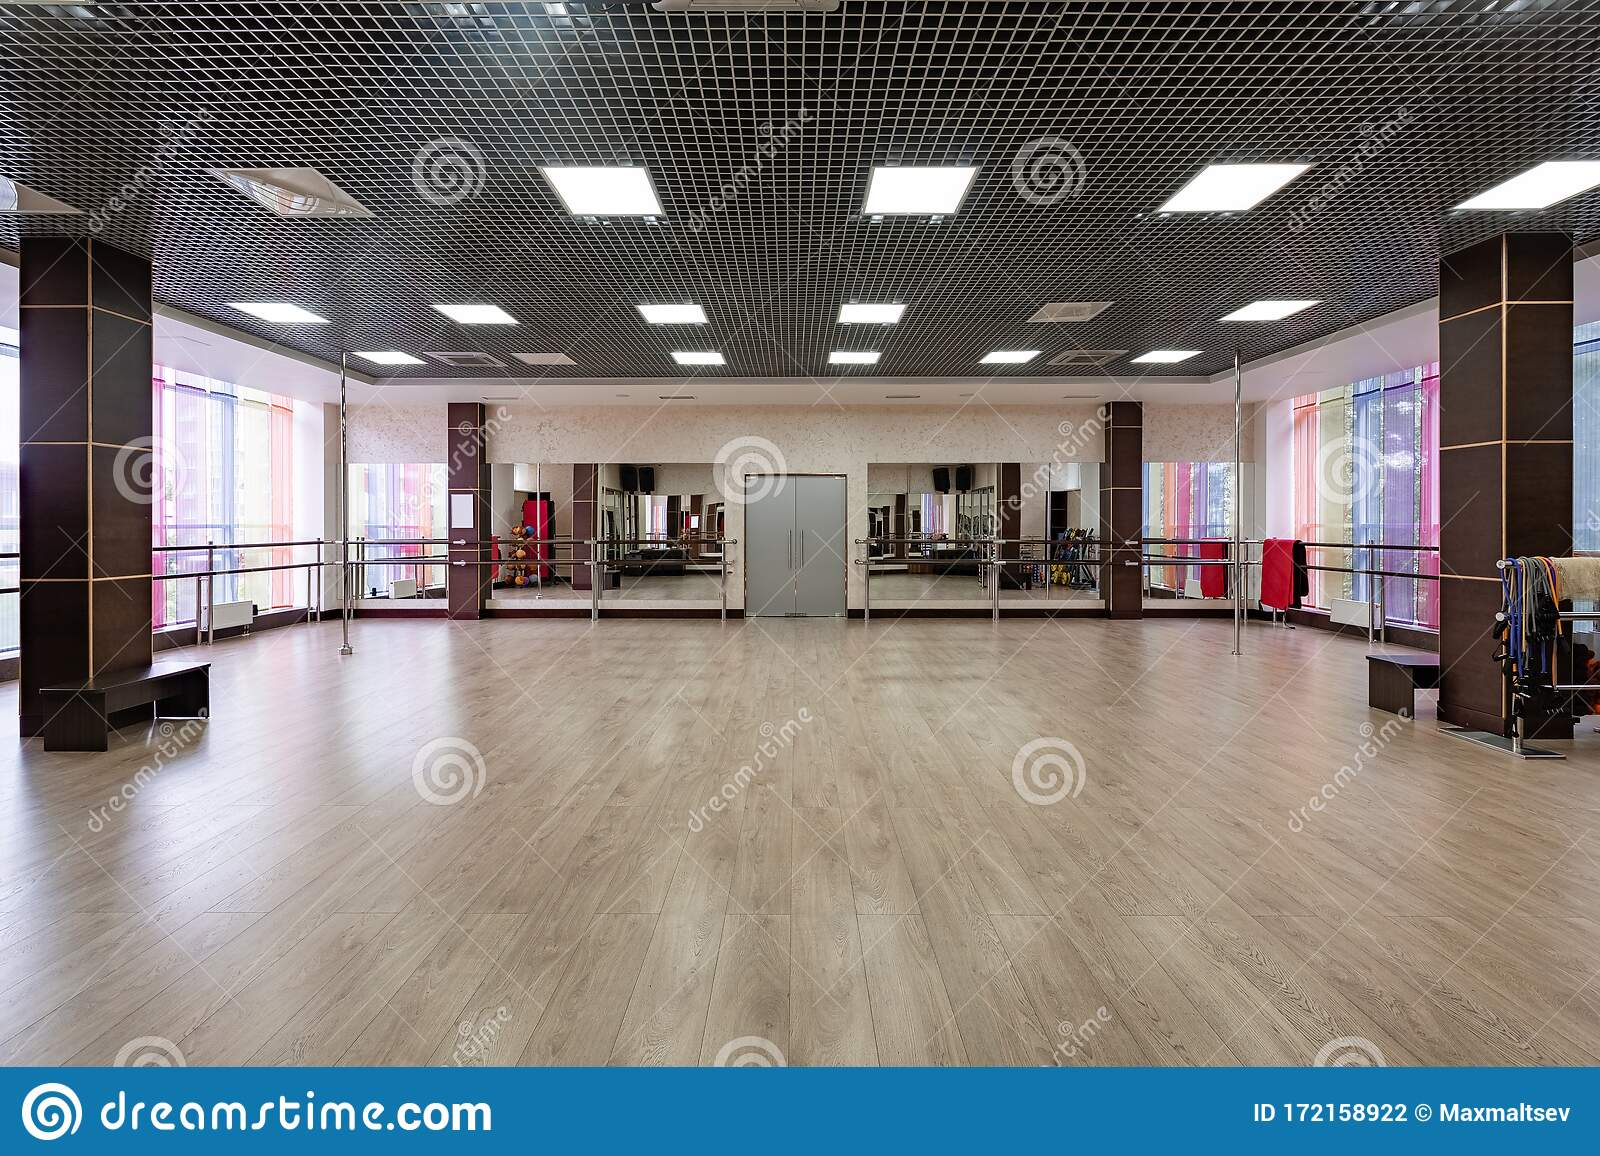 Group Fitness Room Modern Interior Design Fitness Workout Fitness Gym Background Gym Equipment Background Empty Stock Photo Image Of Flexibility Fitness 172158922